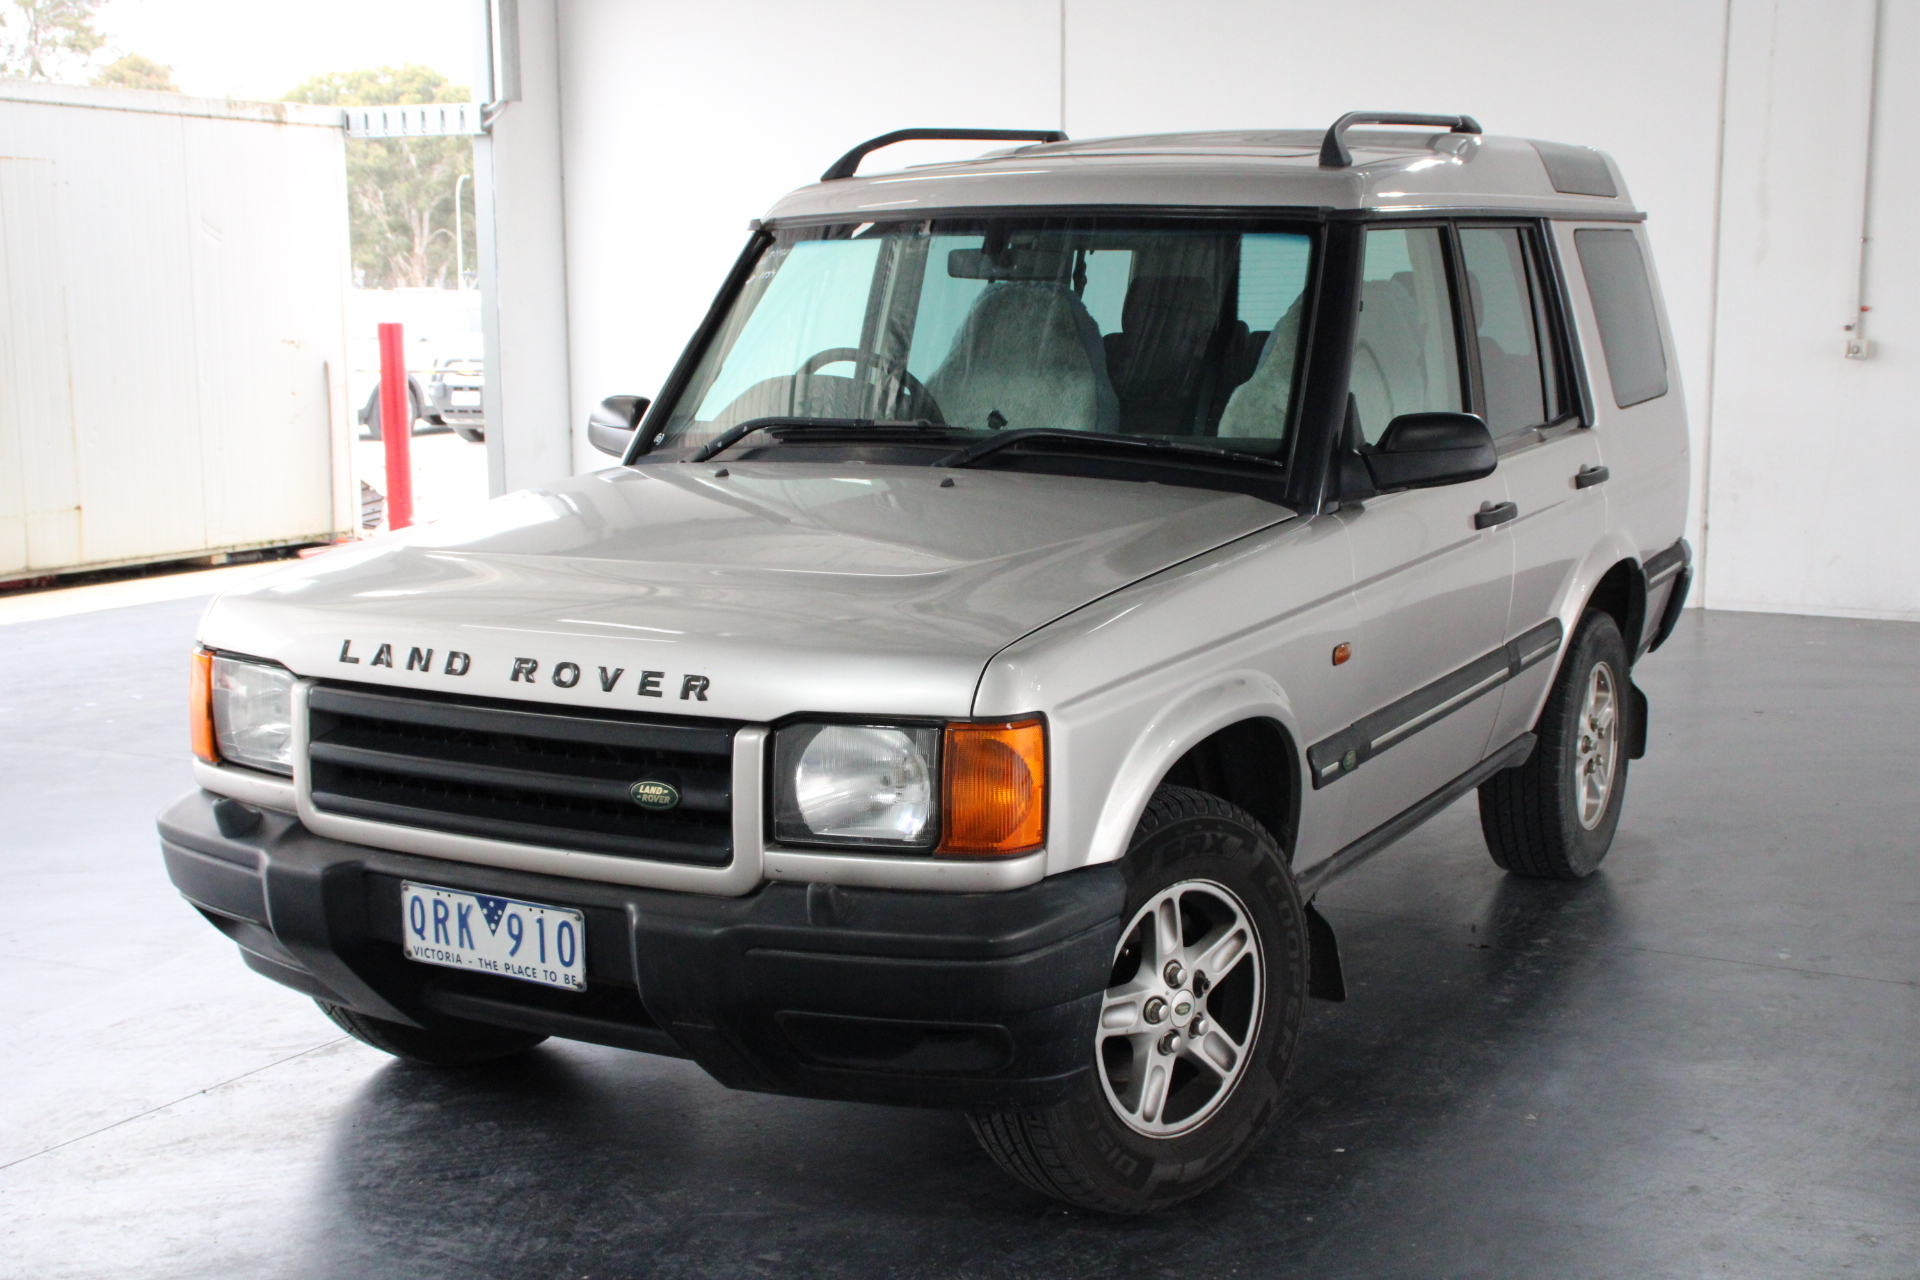 2001 Land Rover Discovery Td5 (4x4) Turbo Diesel Automatic Wagon